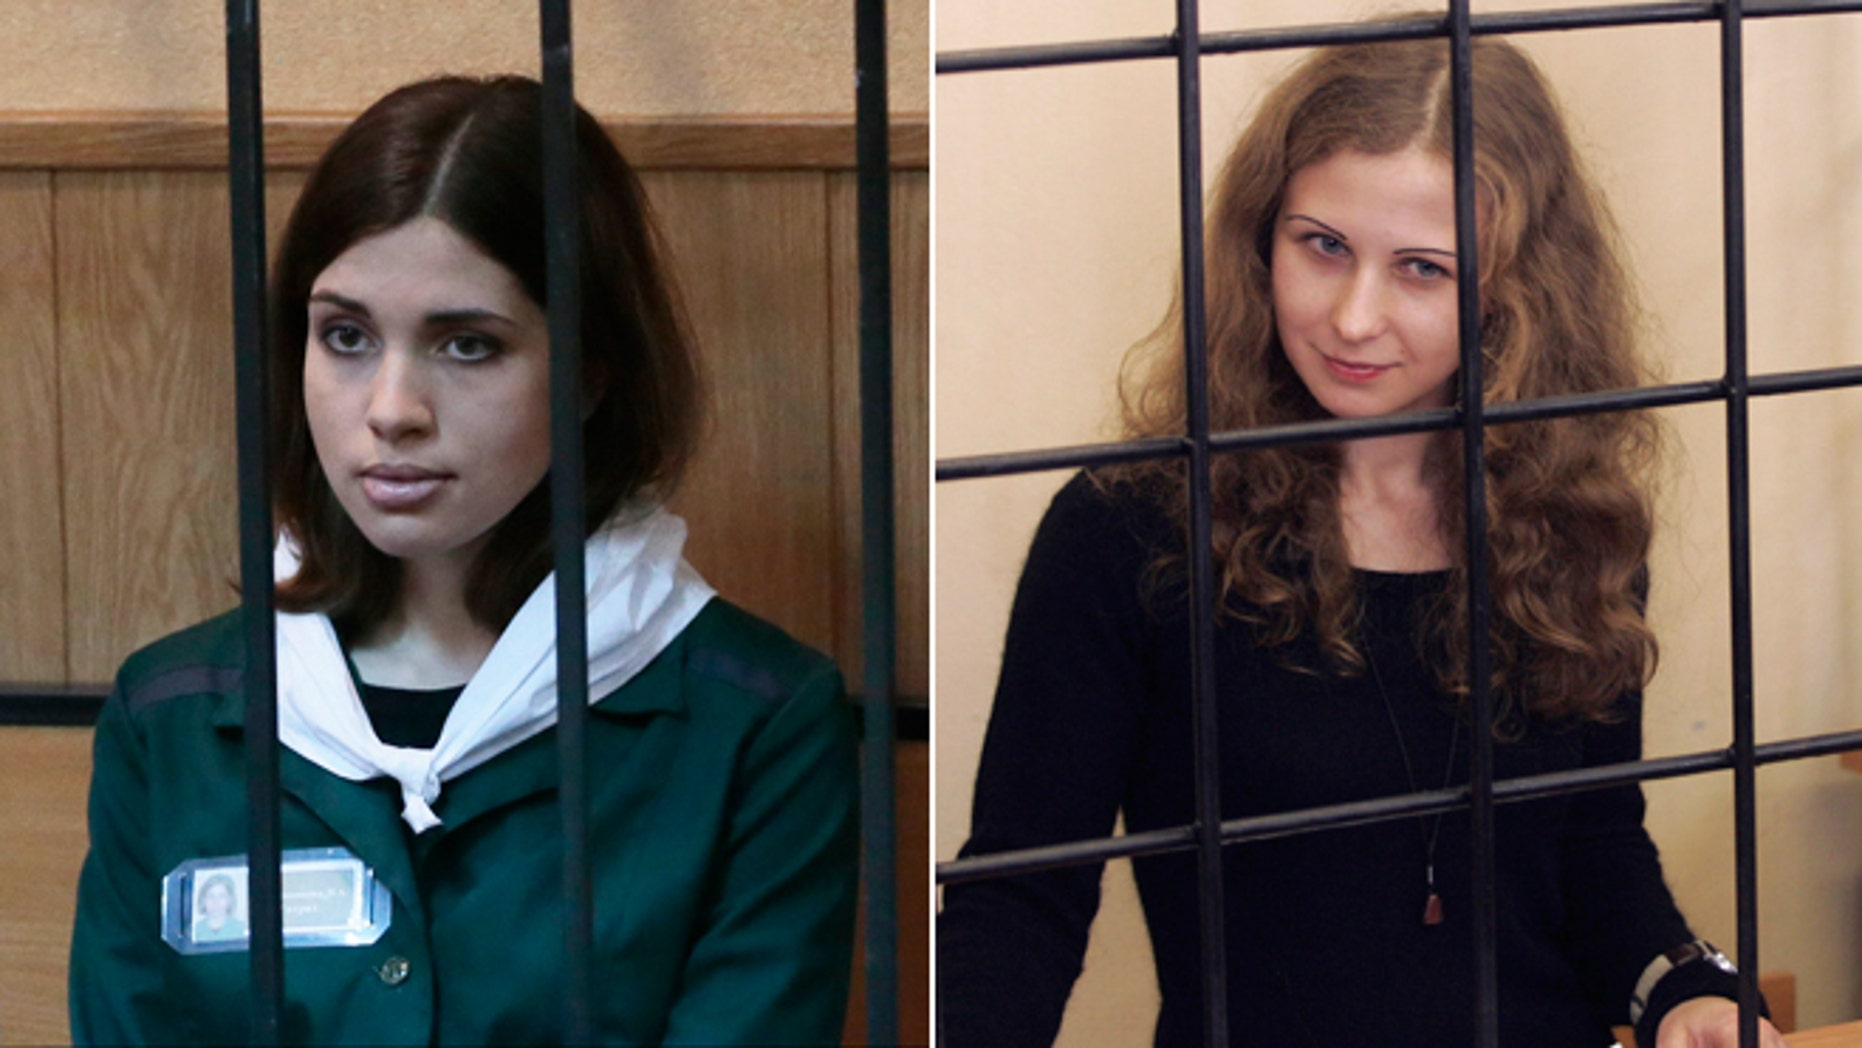 Nadezhda Tolokonnikova, left, and Maria Alyokhina will be freed from jail under an amnesty deal passed by Russian parliament, President Vladimir Putin said Thursday.